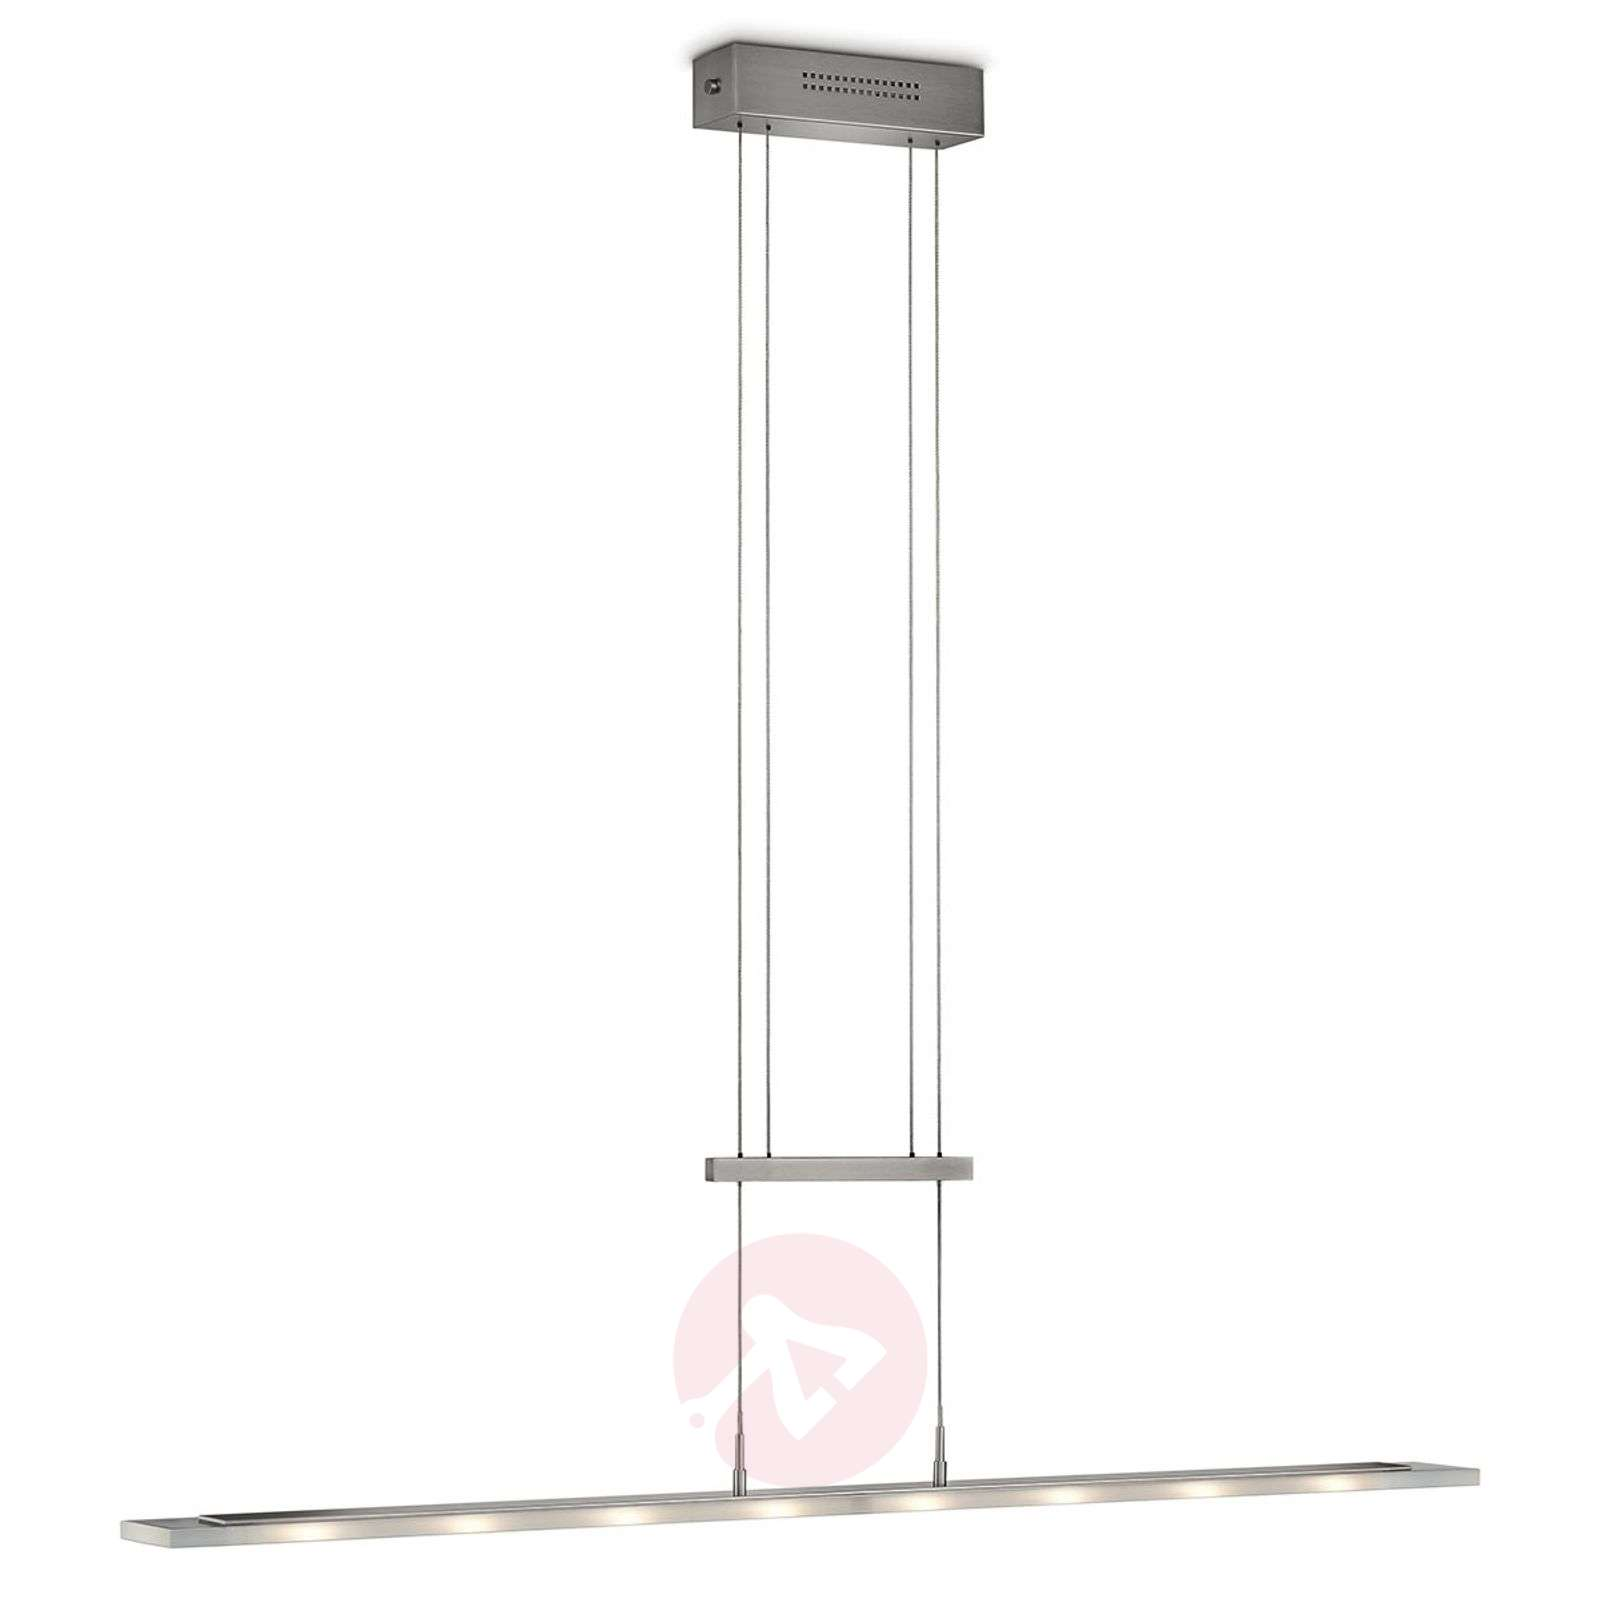 Suspension LED Mia, capteur variation d'intensité-4002678-01